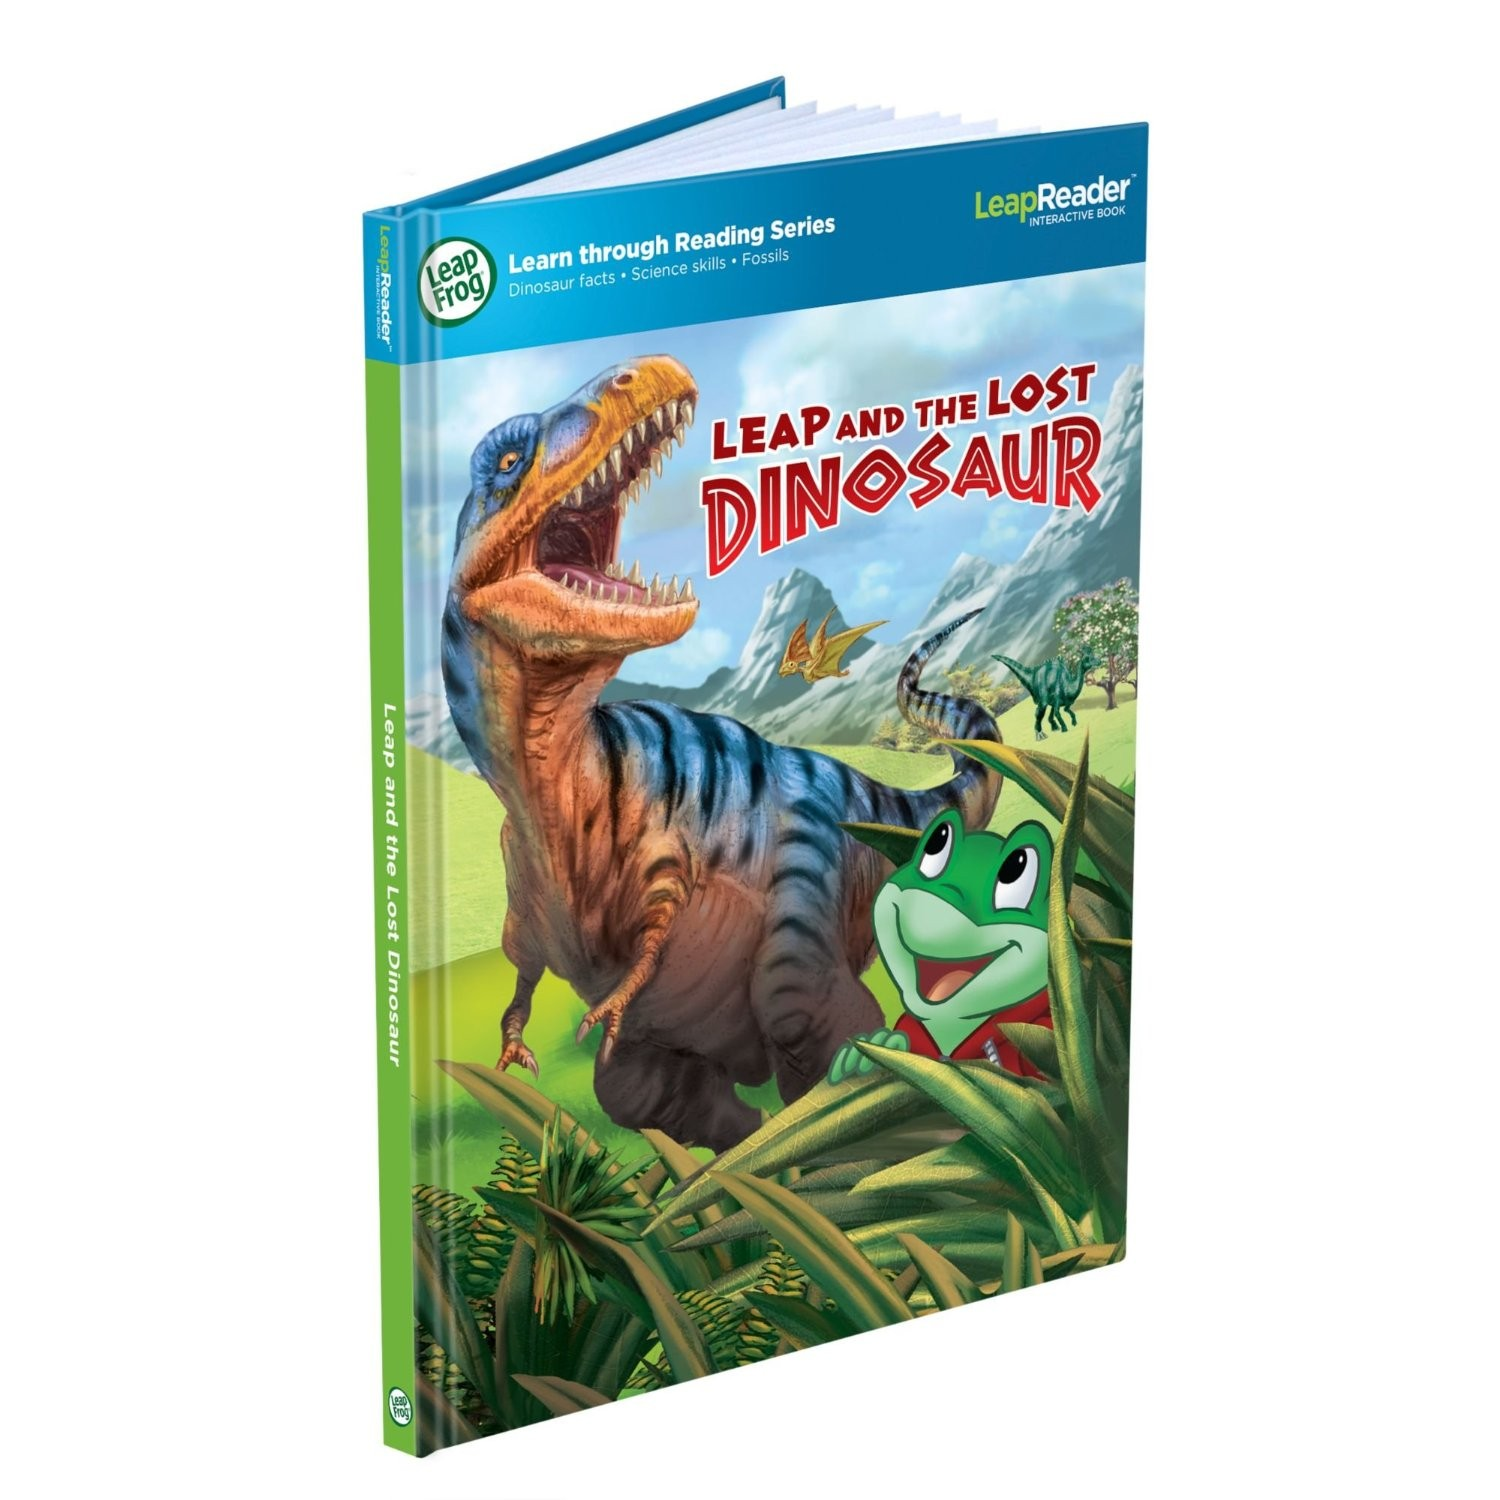 LeapReader Leap and the Lost Dinosaur Book